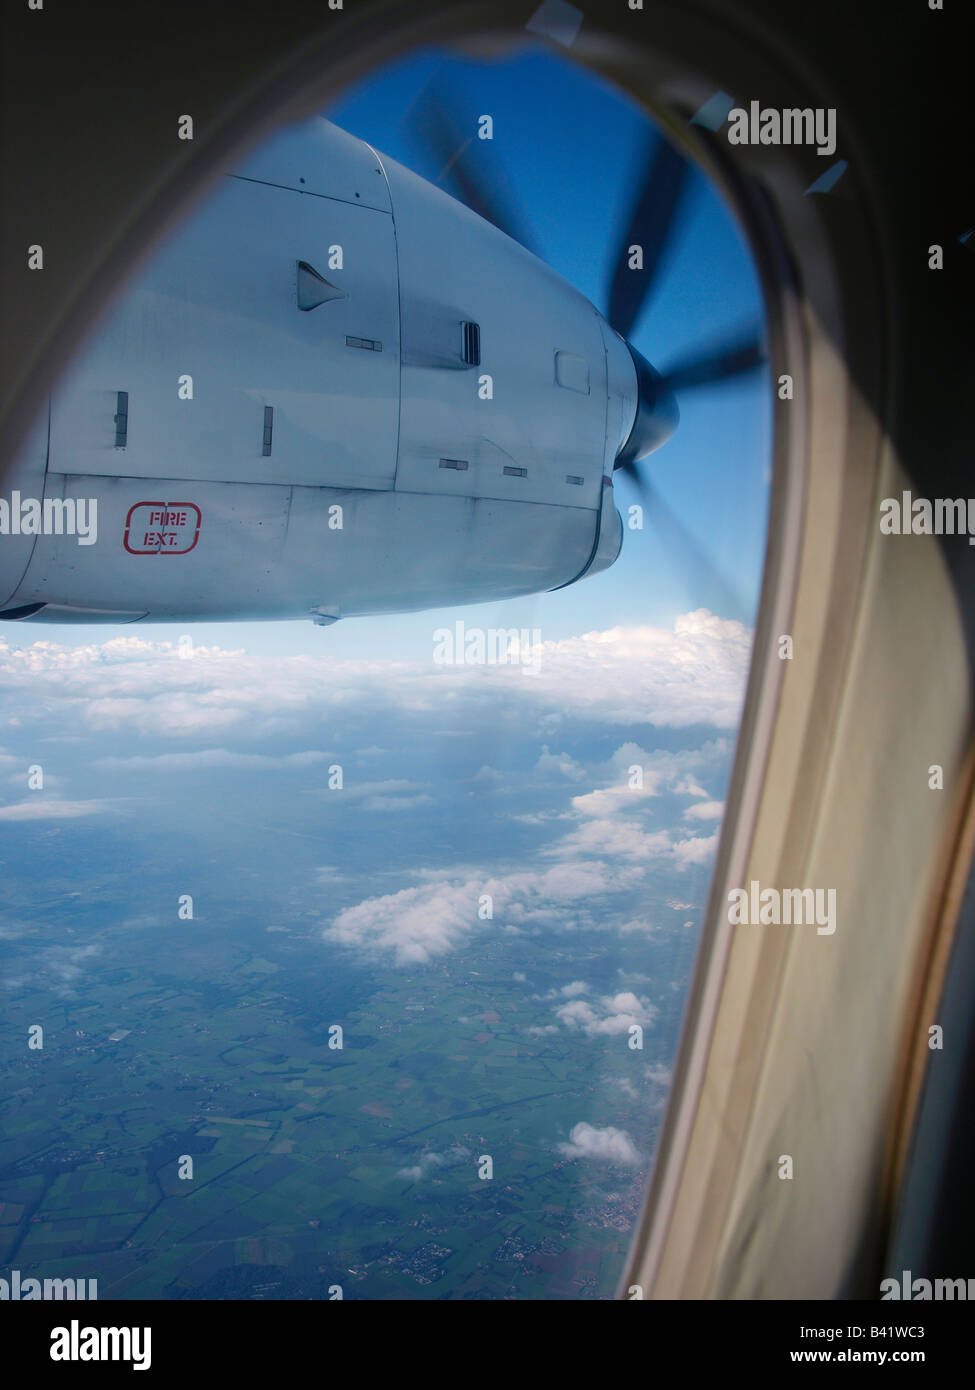 Flying over the south of the Netherlands in a Dornier 328 turboprop aeroplane - Stock Image